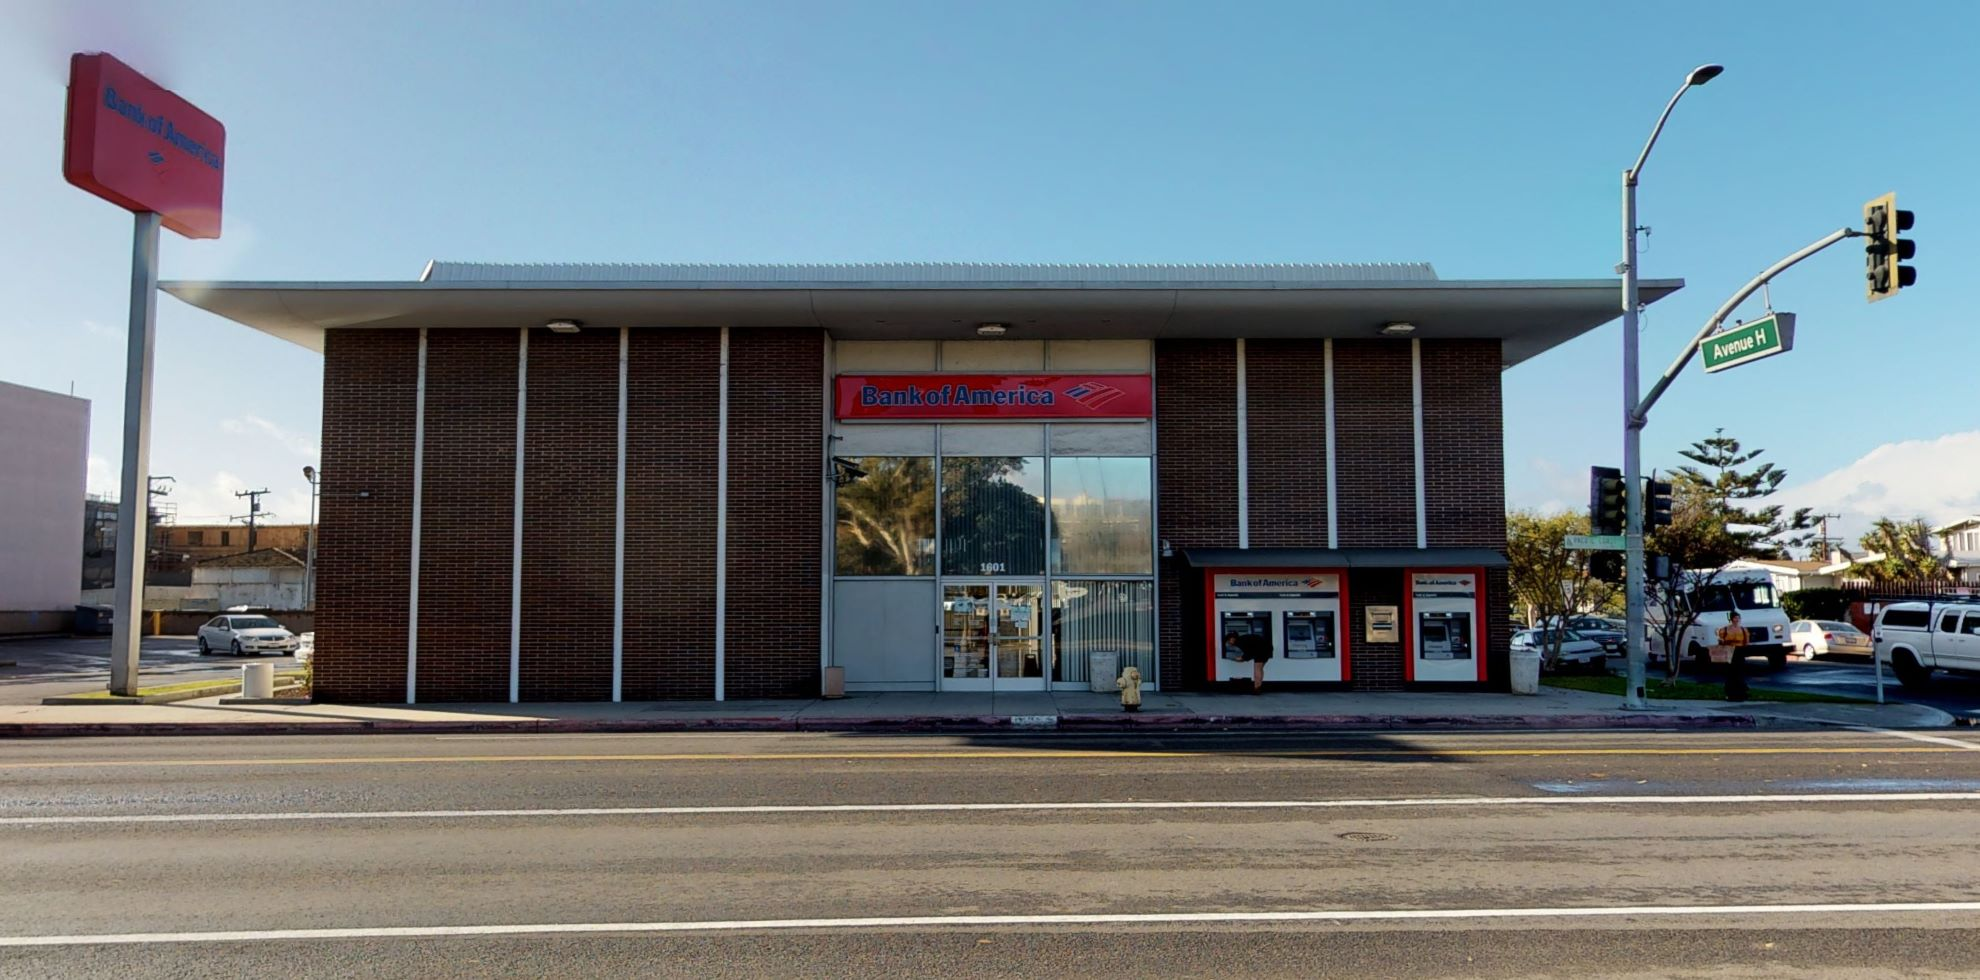 Bank of America financial center with walk-up ATM   1601 S Pacific Coast Hwy, Redondo Beach, CA 90277